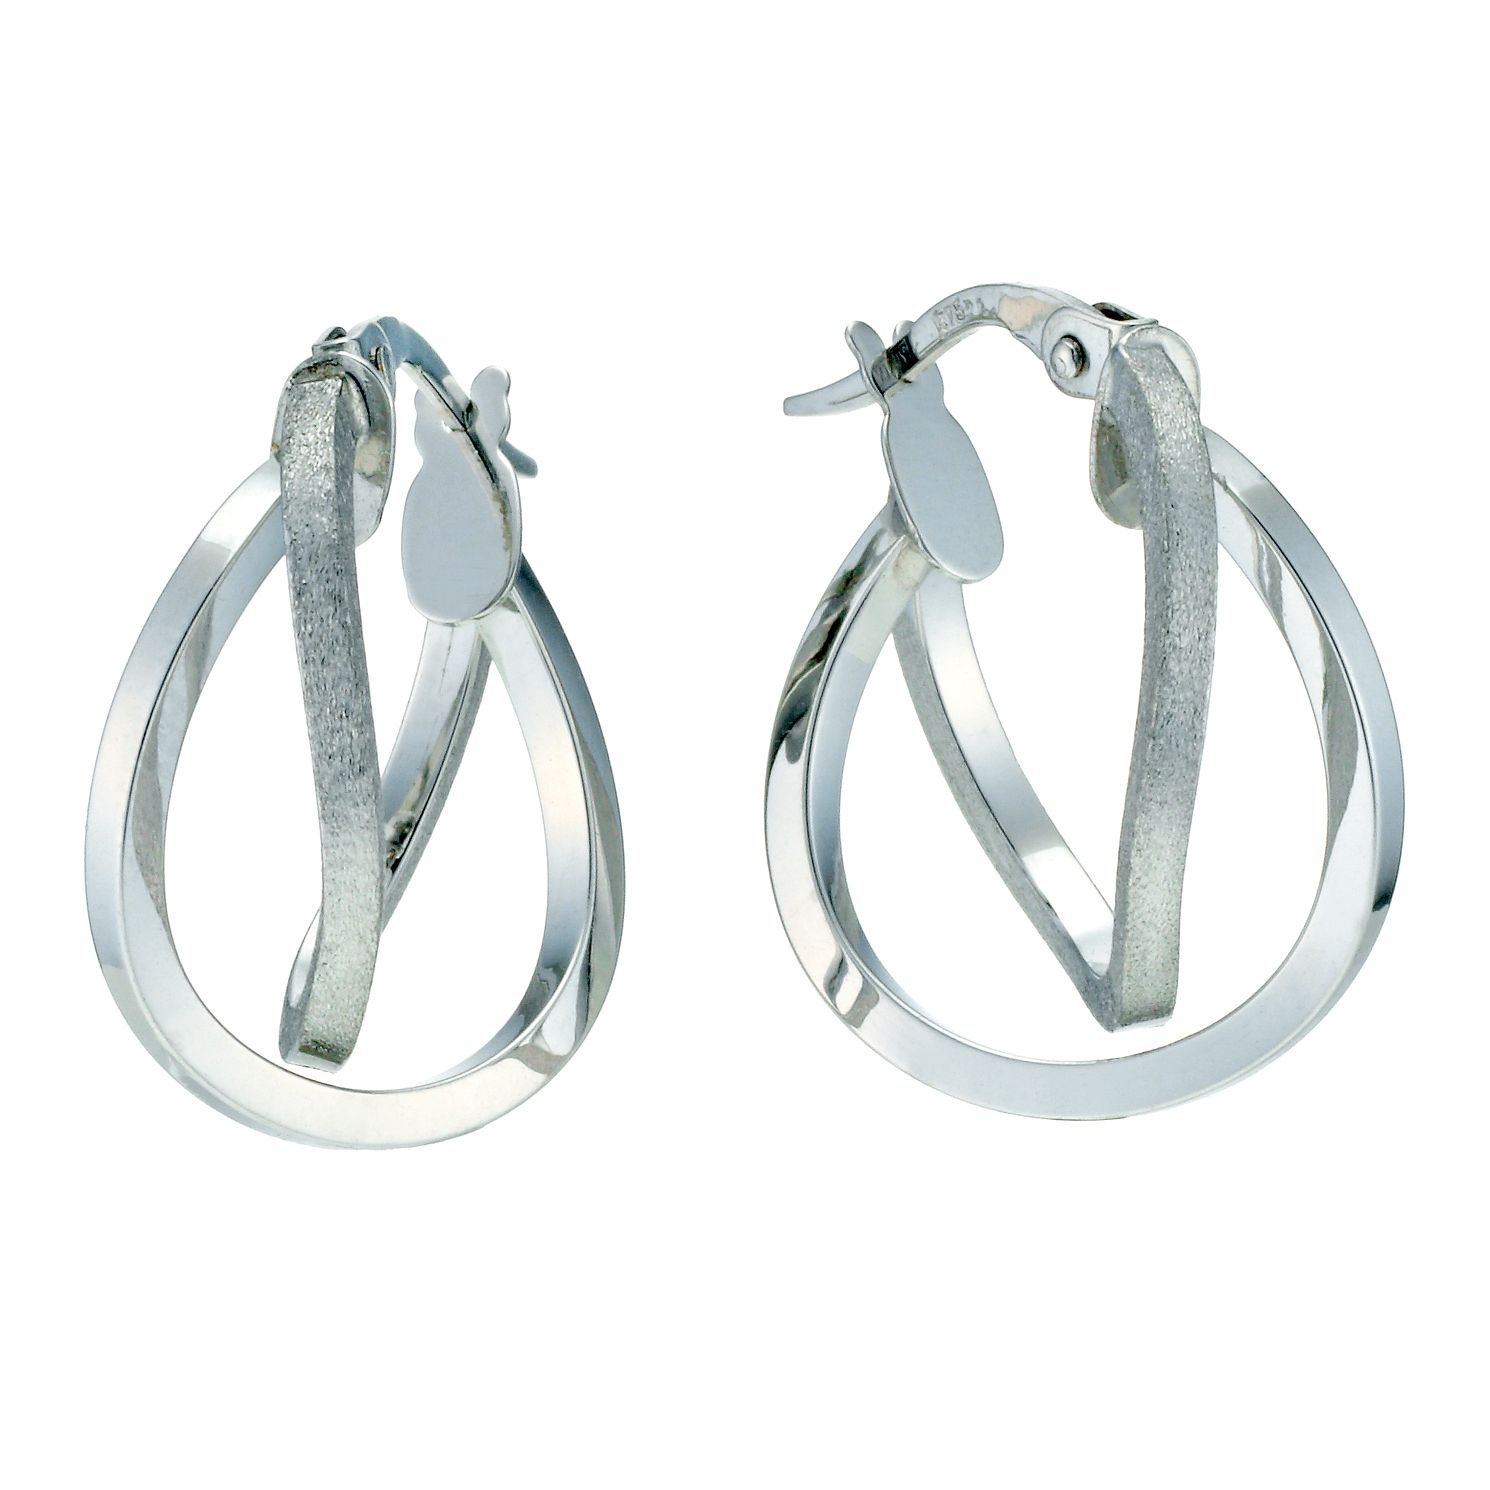 9ct White Gold Double Row Twist 15mm Hoop Earrings - Product number 9280243